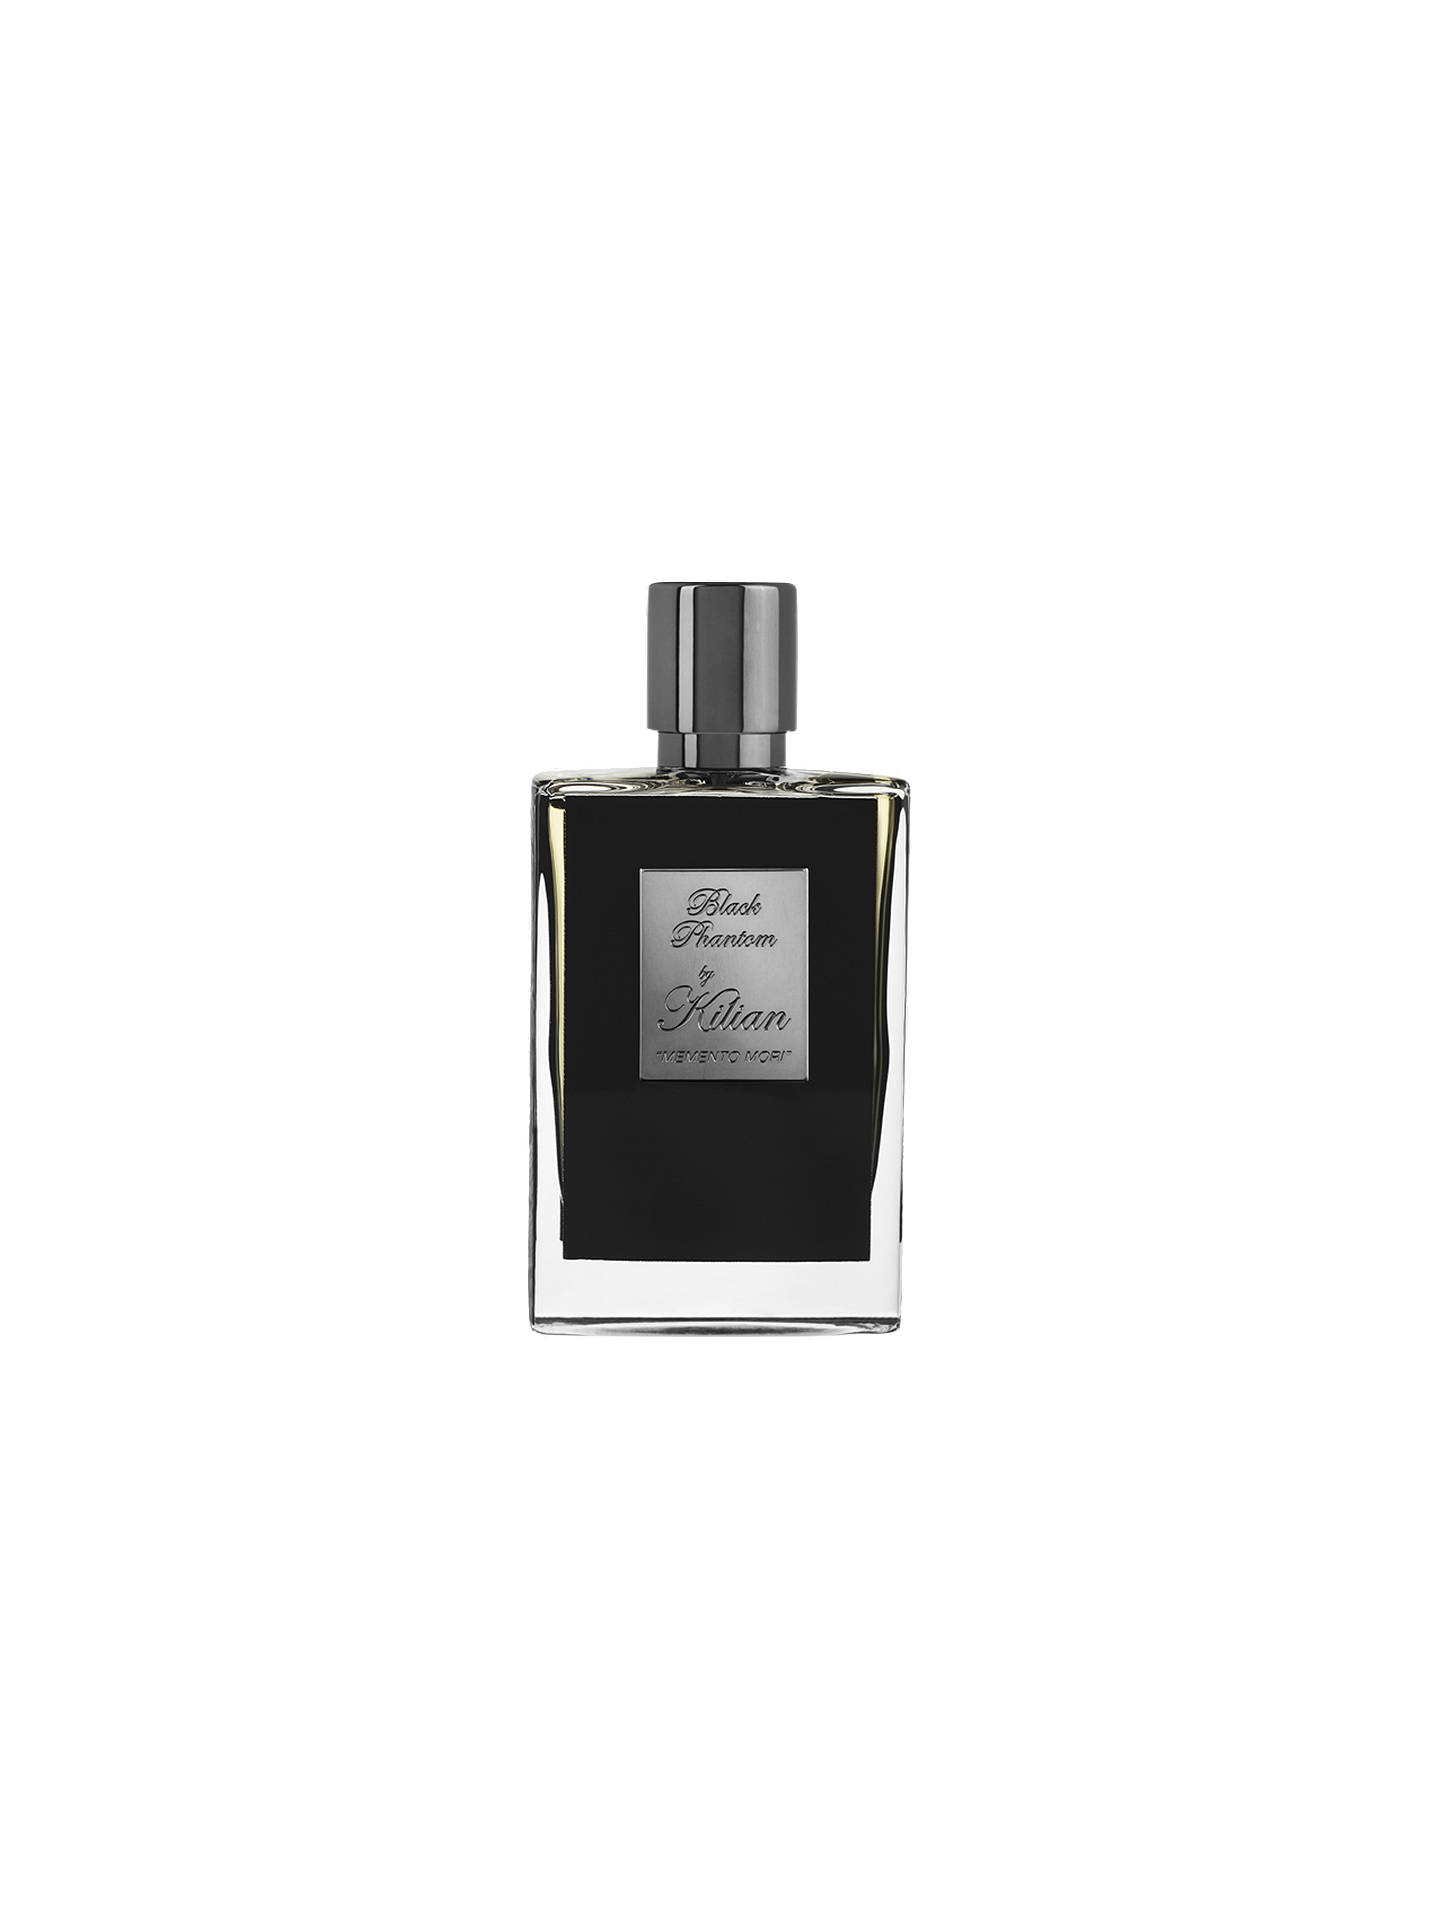 BuyKilian Black Phantom Eau de Parfum, 50ml Online at johnlewis.com